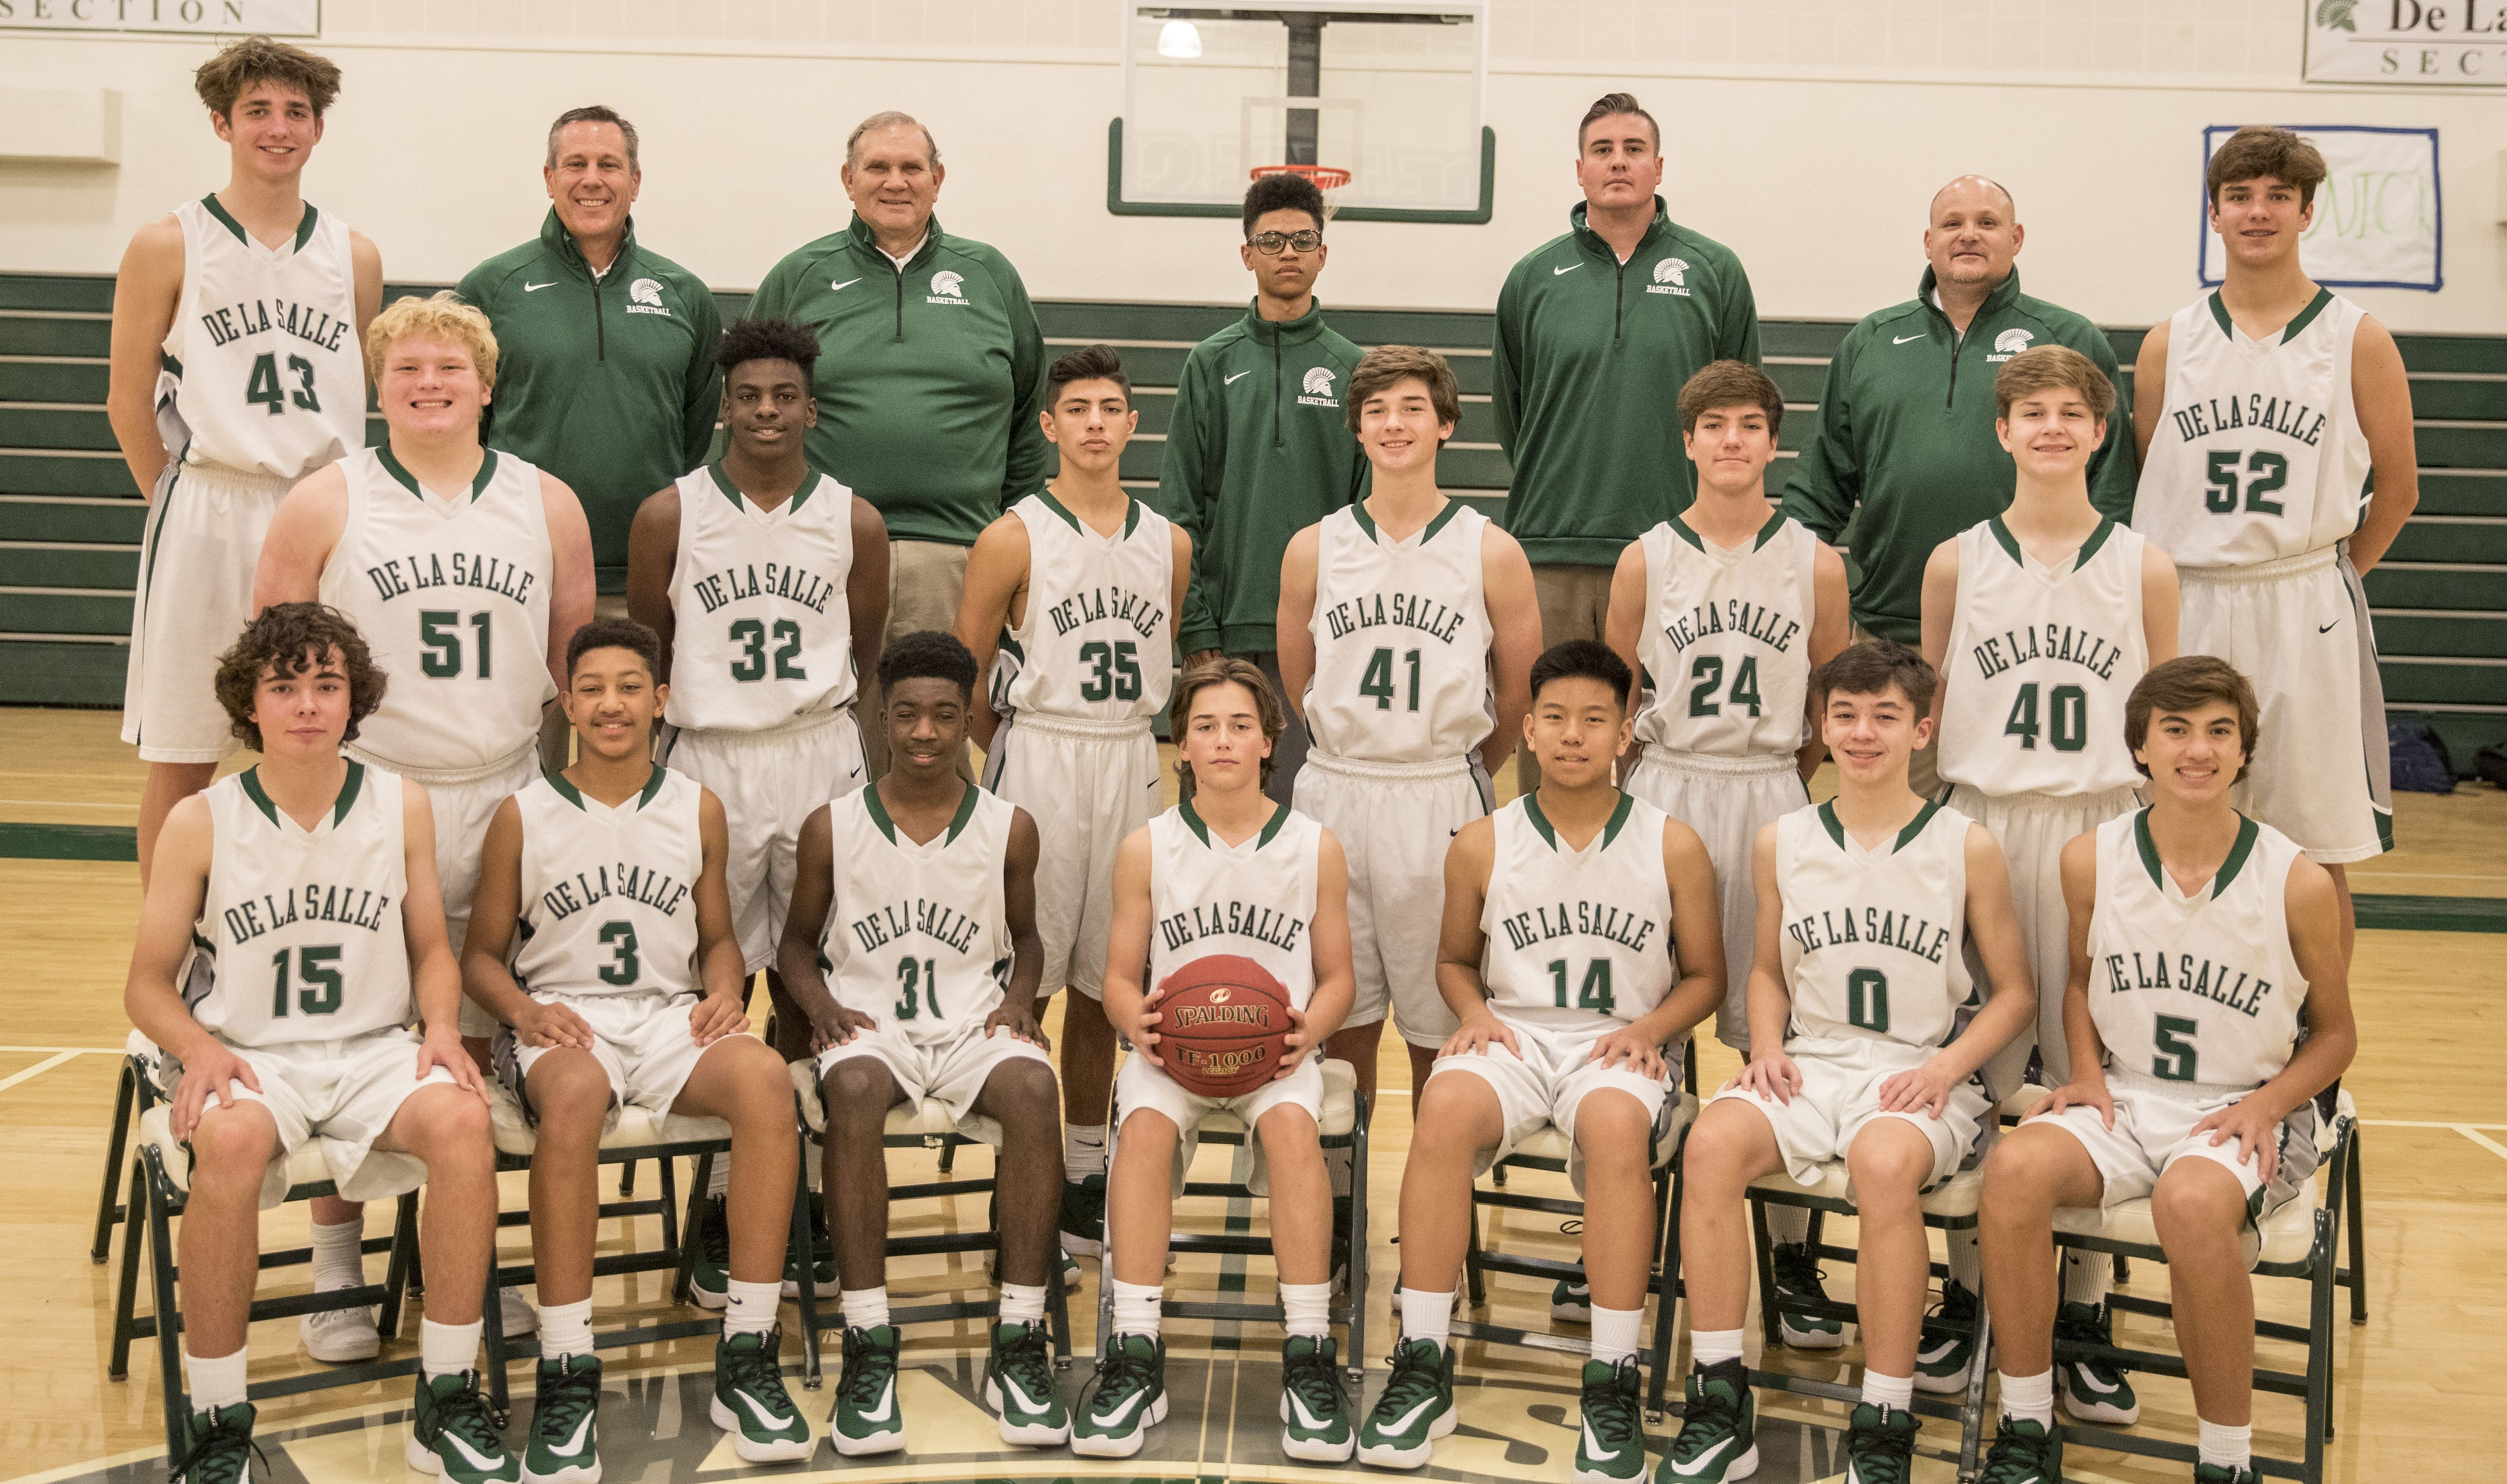 Frosh Silver Basketball Team 2019-20